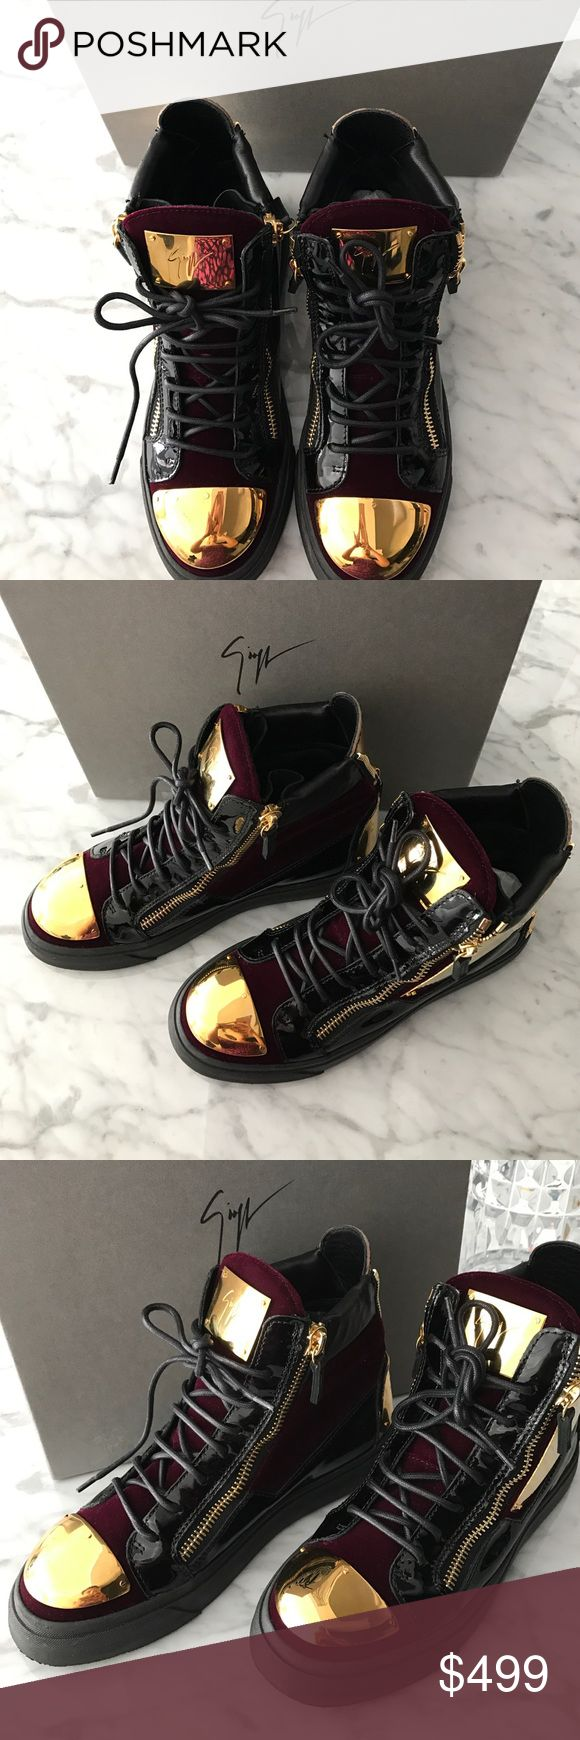 Giuseppe Zanotti High Top Sneakers NIB New in box Giuseppe Zanotti sneakers sz. 38 Giuseppe Zanotti Shoes Sneakers